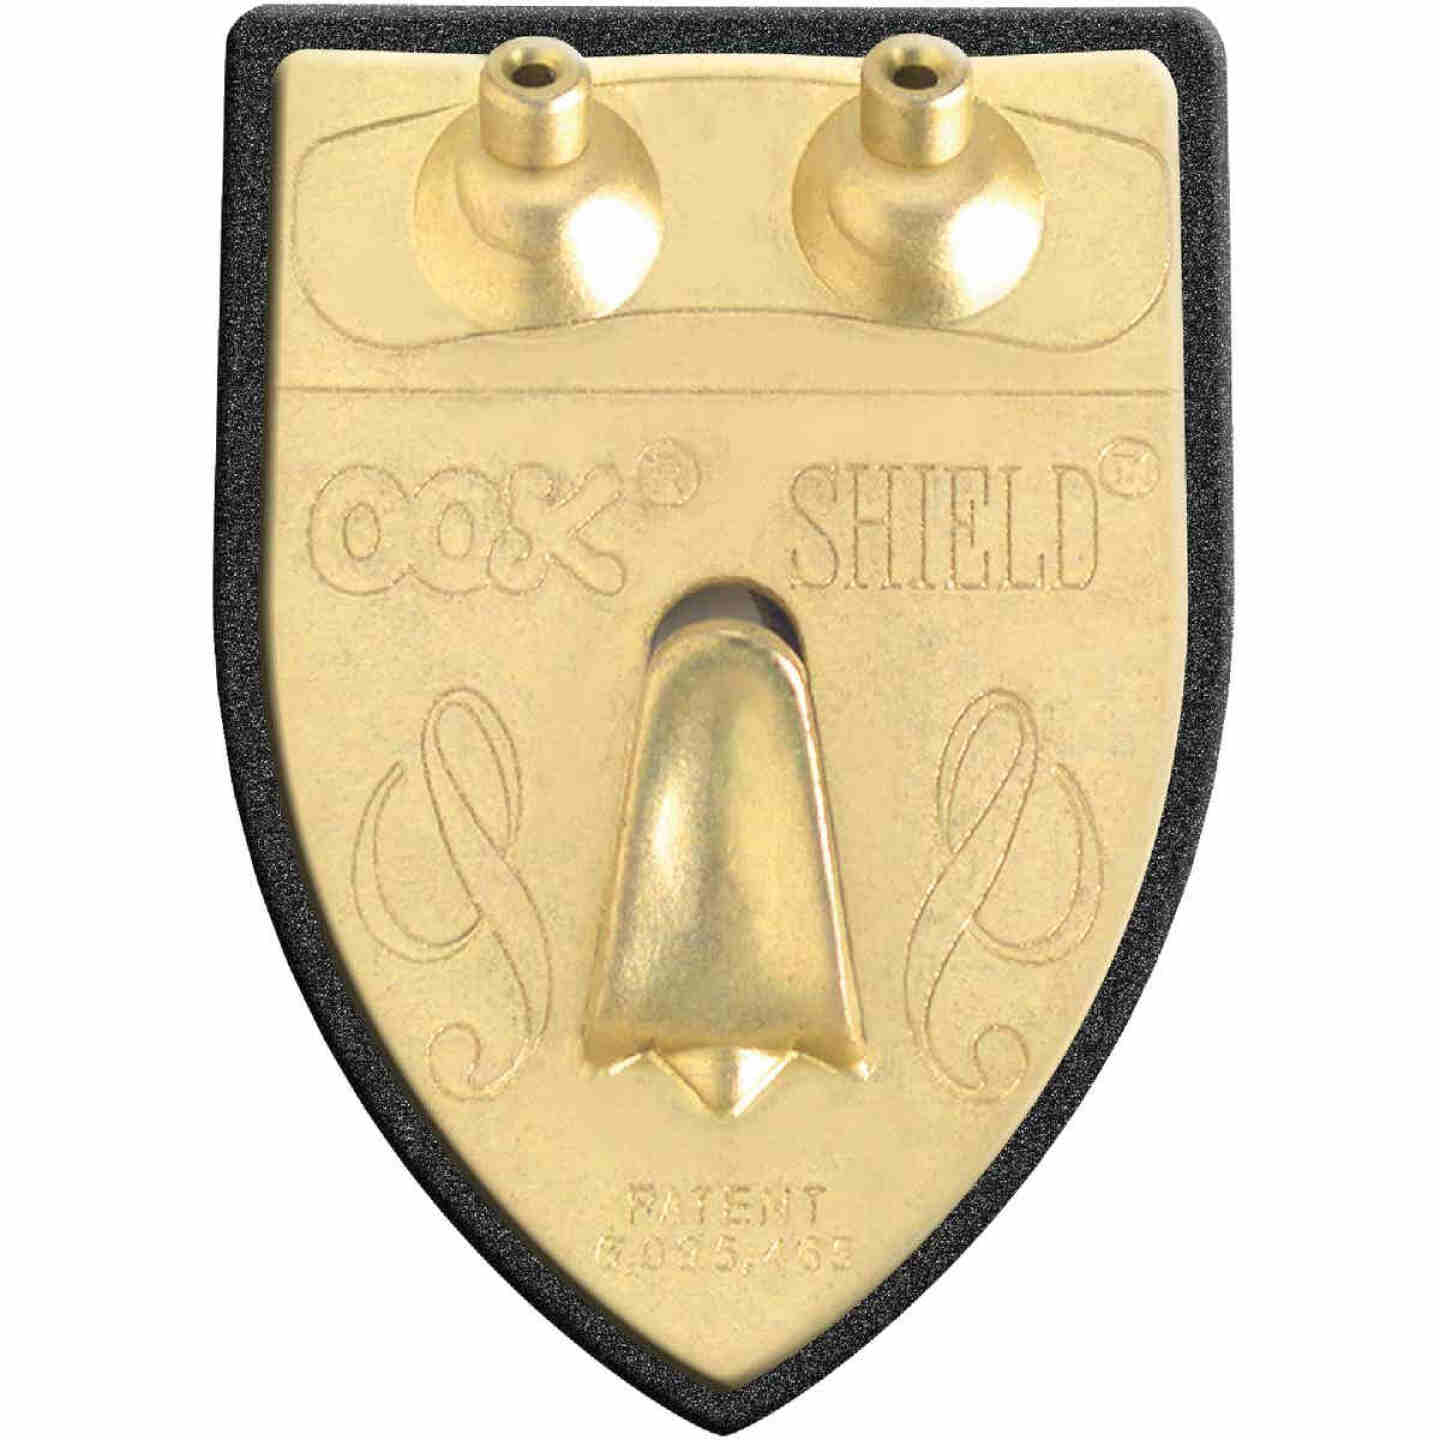 Hillman OOK 50 Lb. Capacity Shield Picture Hanger (2 Count) Image 1